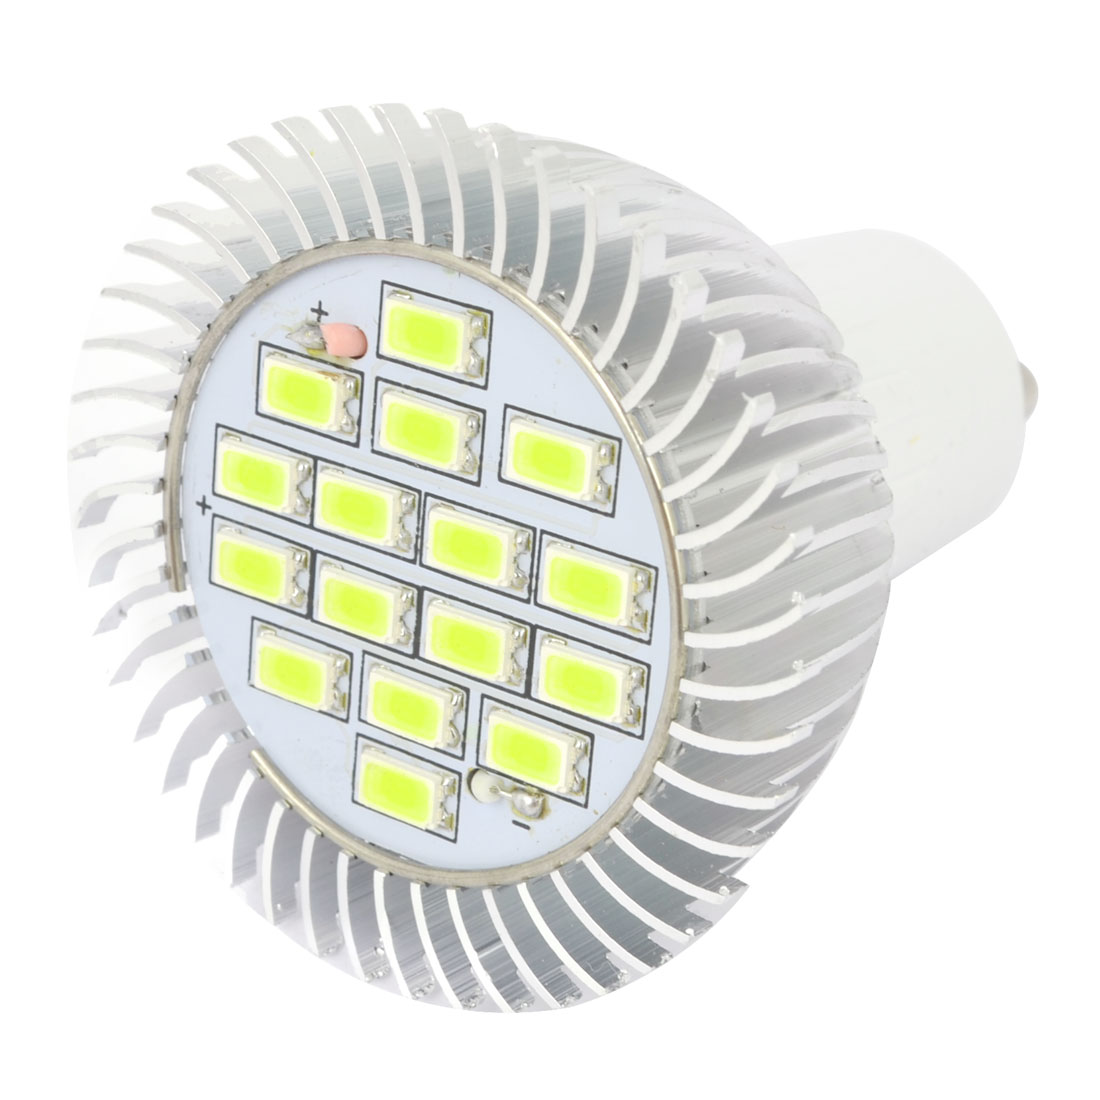 Home Indoor GU10 6W 16 LED Bright Pure White Spotlight Lamp AC 220V